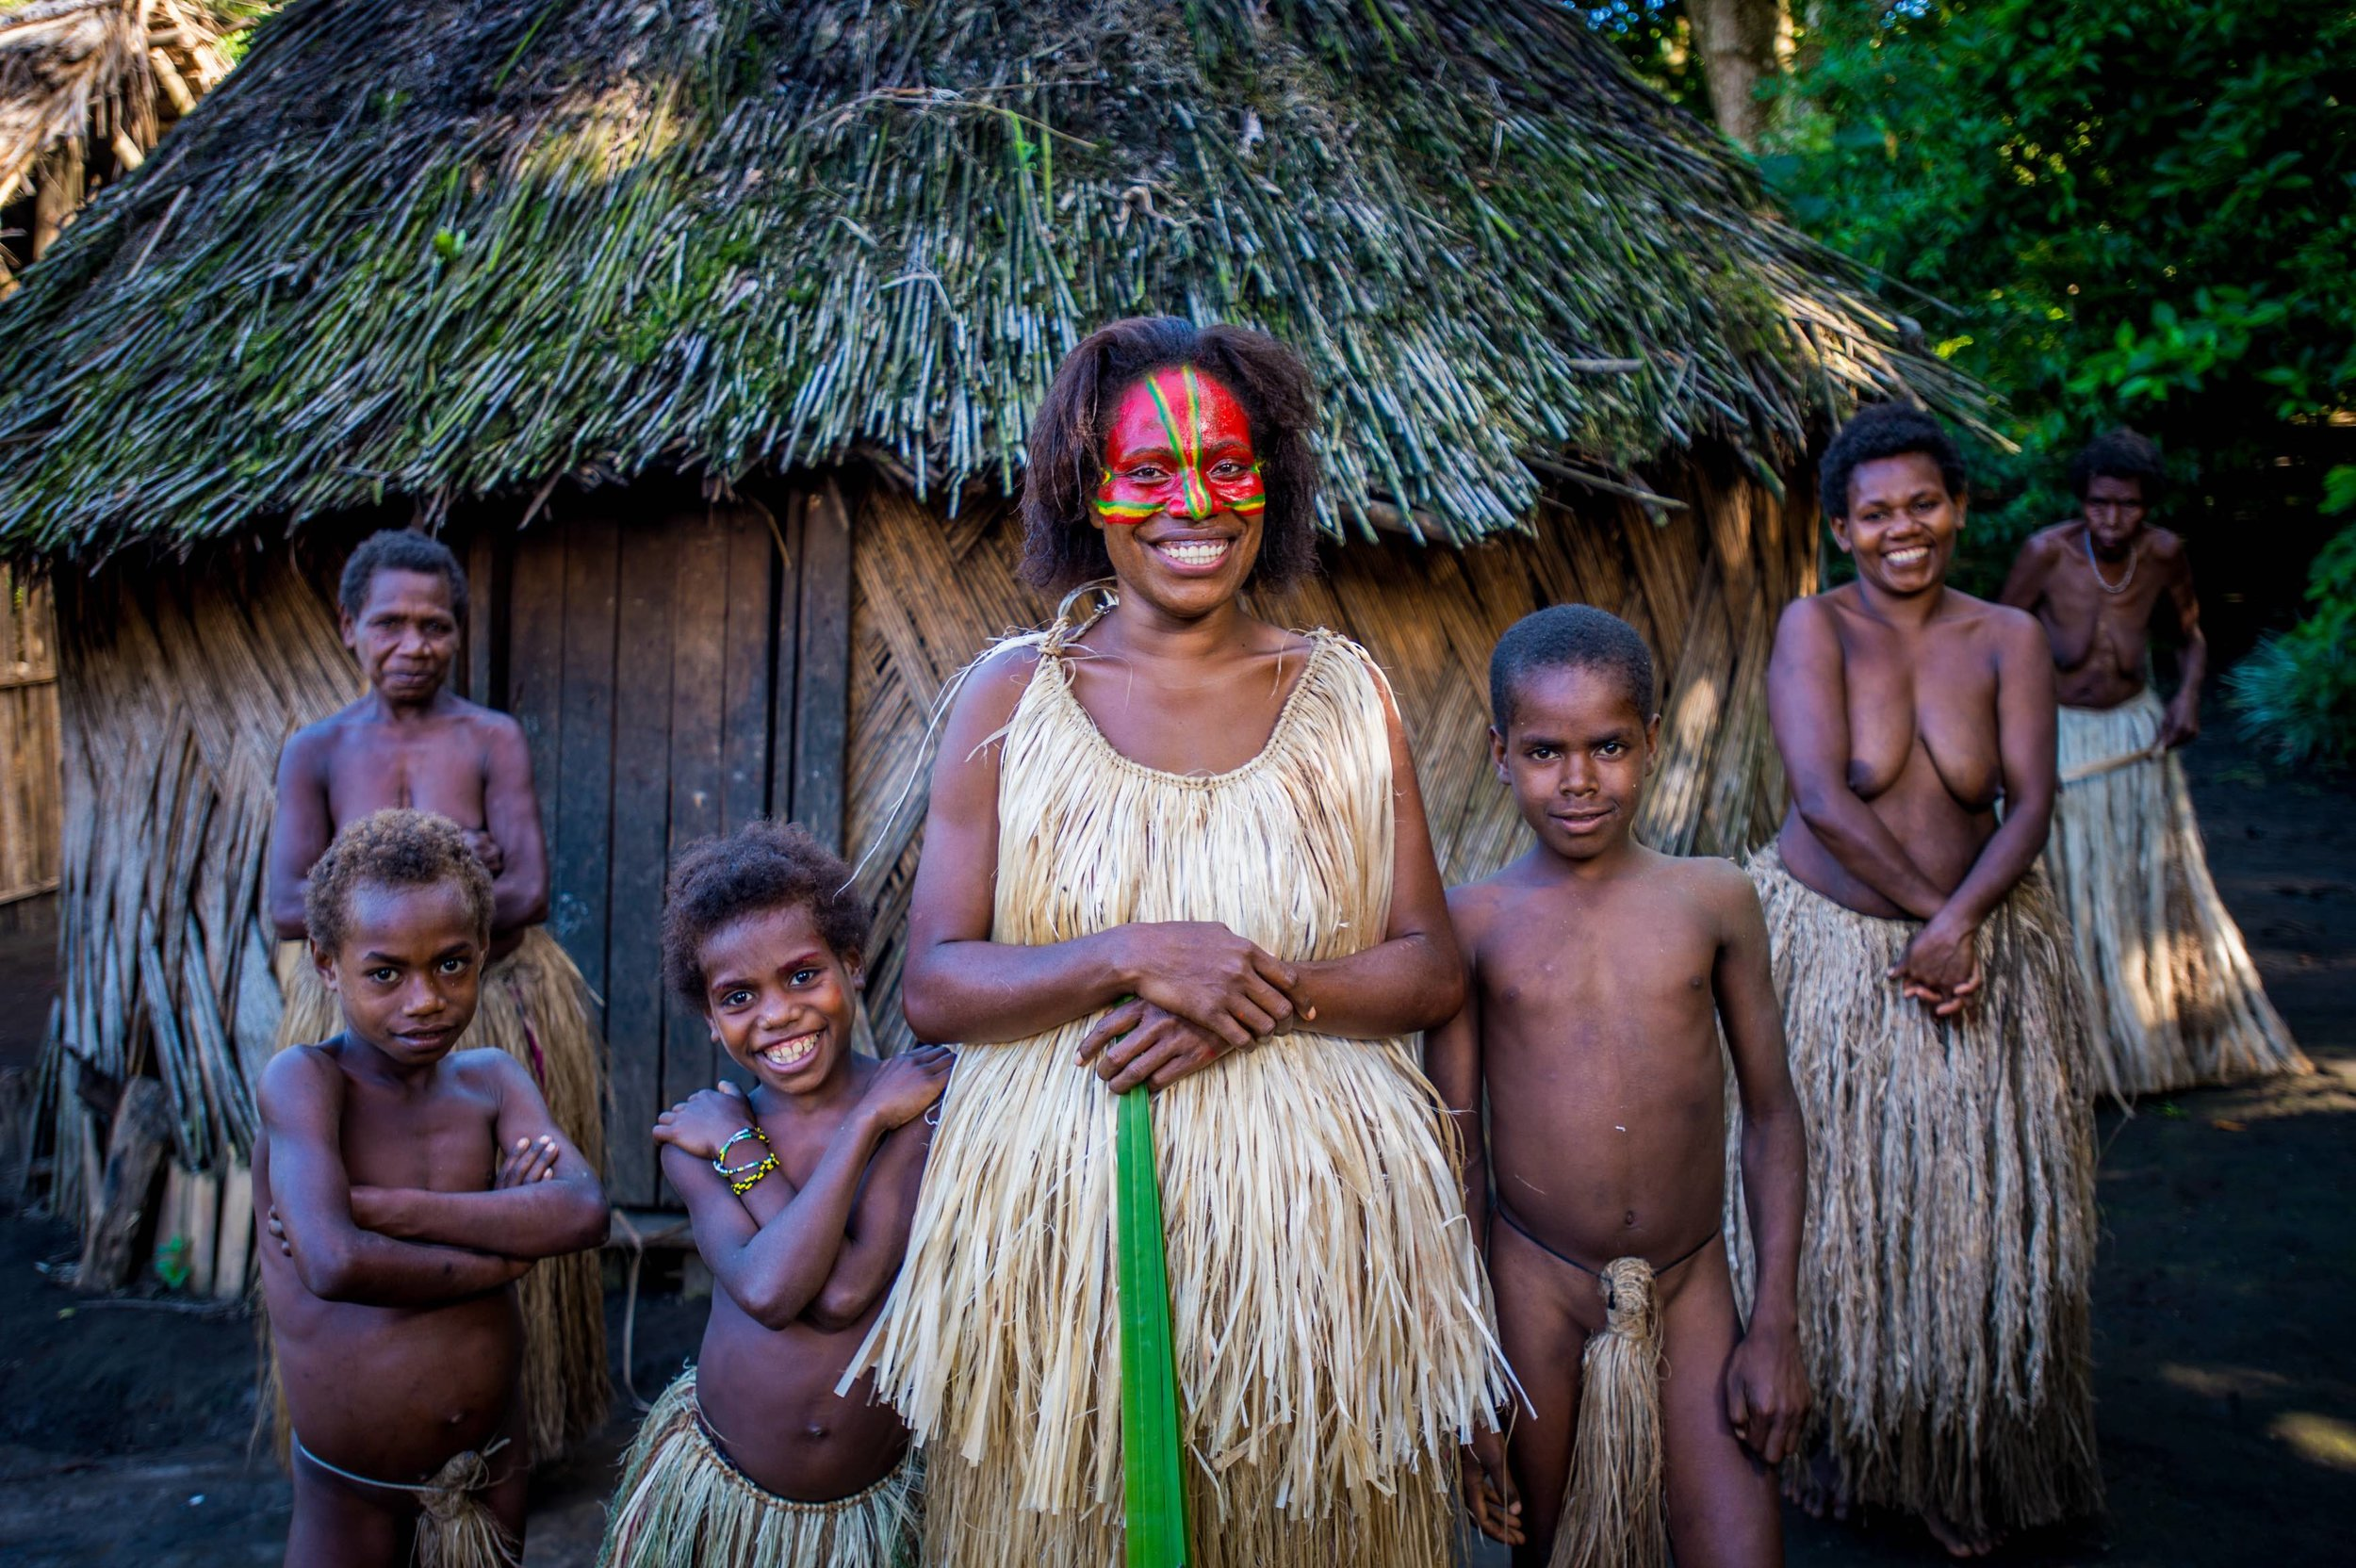 Image supplied by the Vanuatu Tourism Office